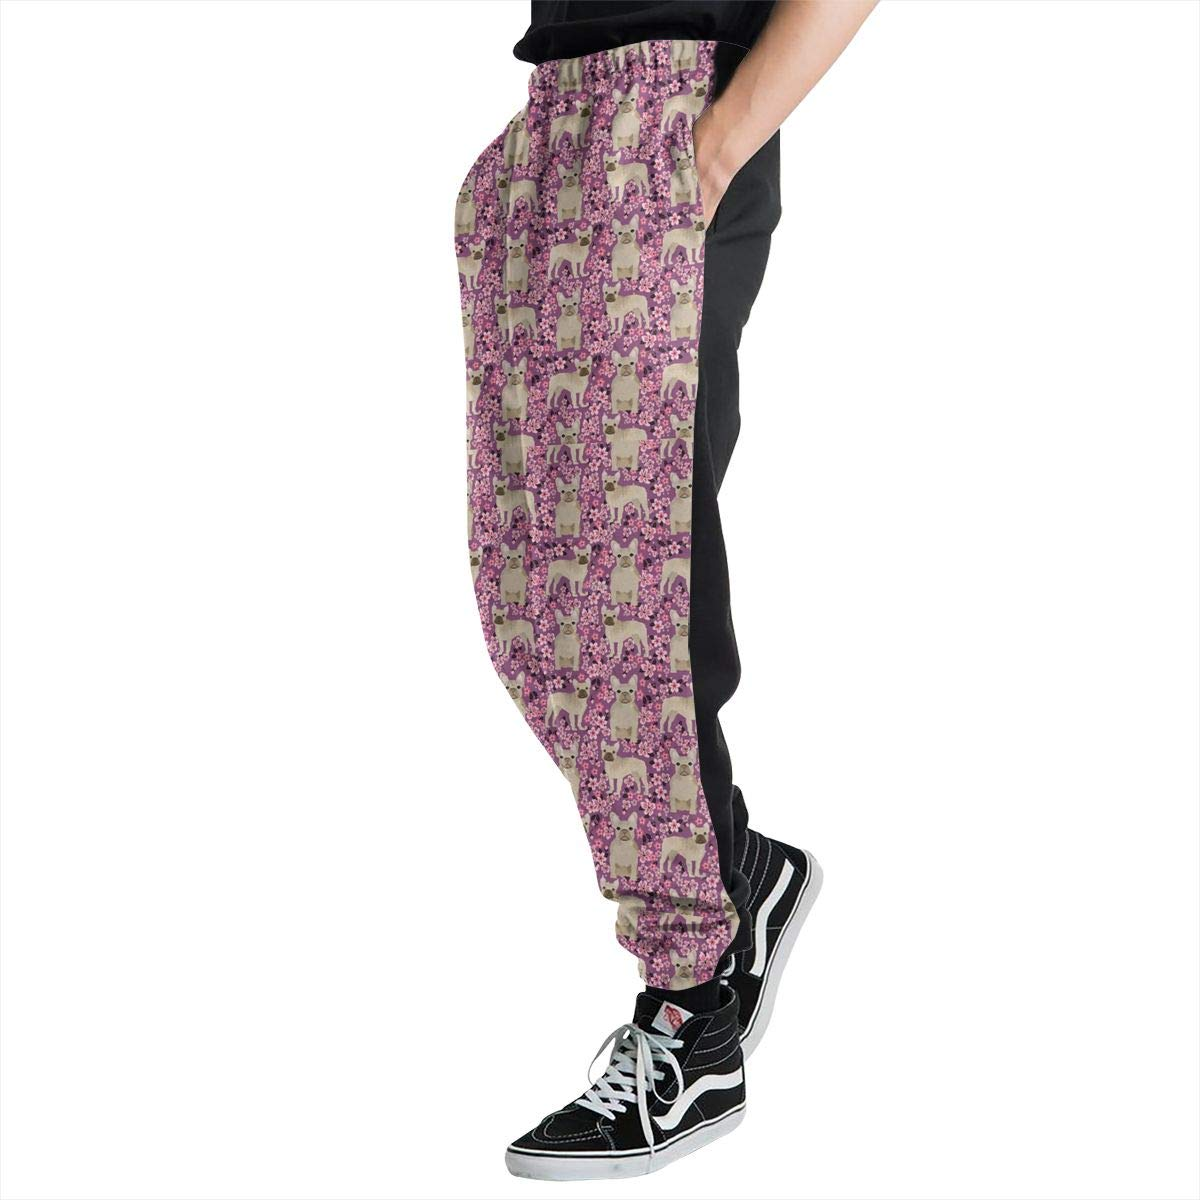 Mens Big and Tall Workout Pants French Bulldog Cherry Blossom Sweatpants with Size S-3XL